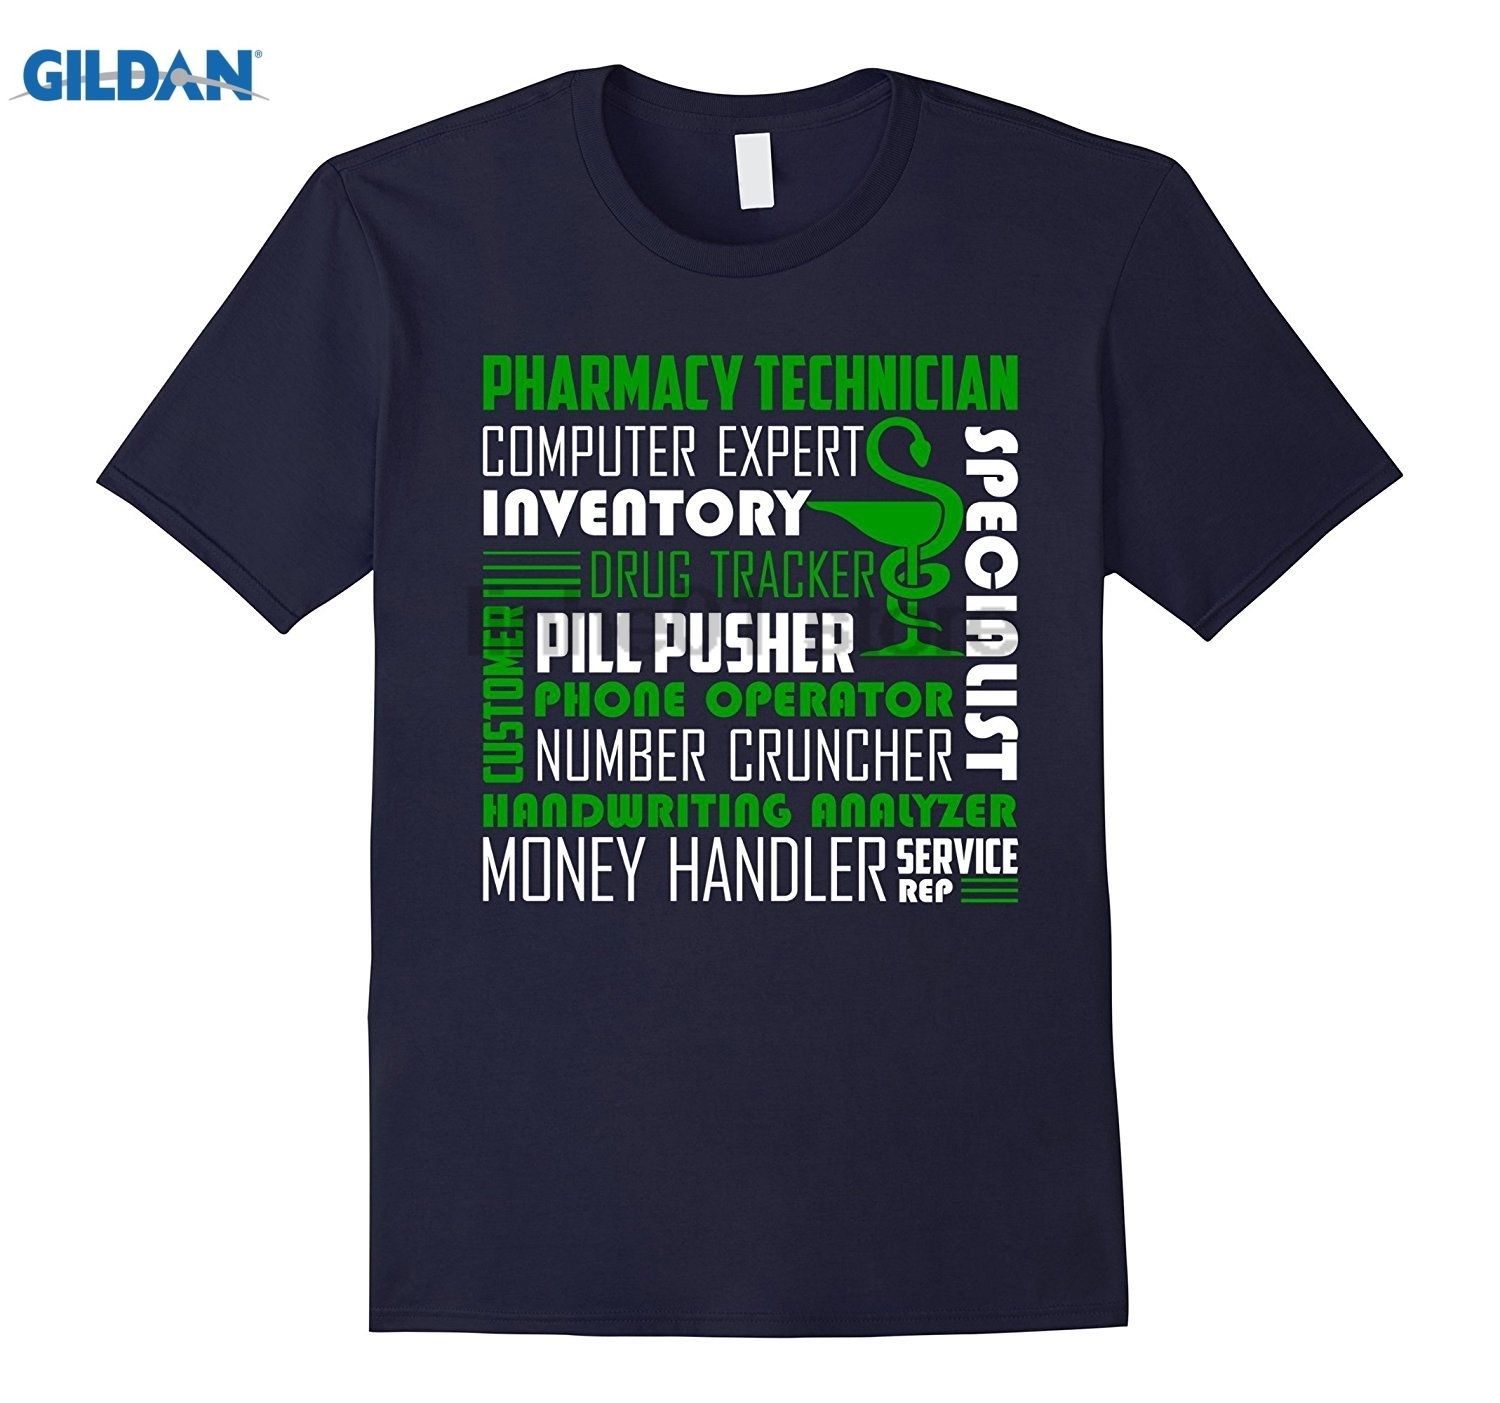 GILDAN Pharmacy Technician Shirts - Pharmacy Technician Tshirt Dress female T-shirt ...